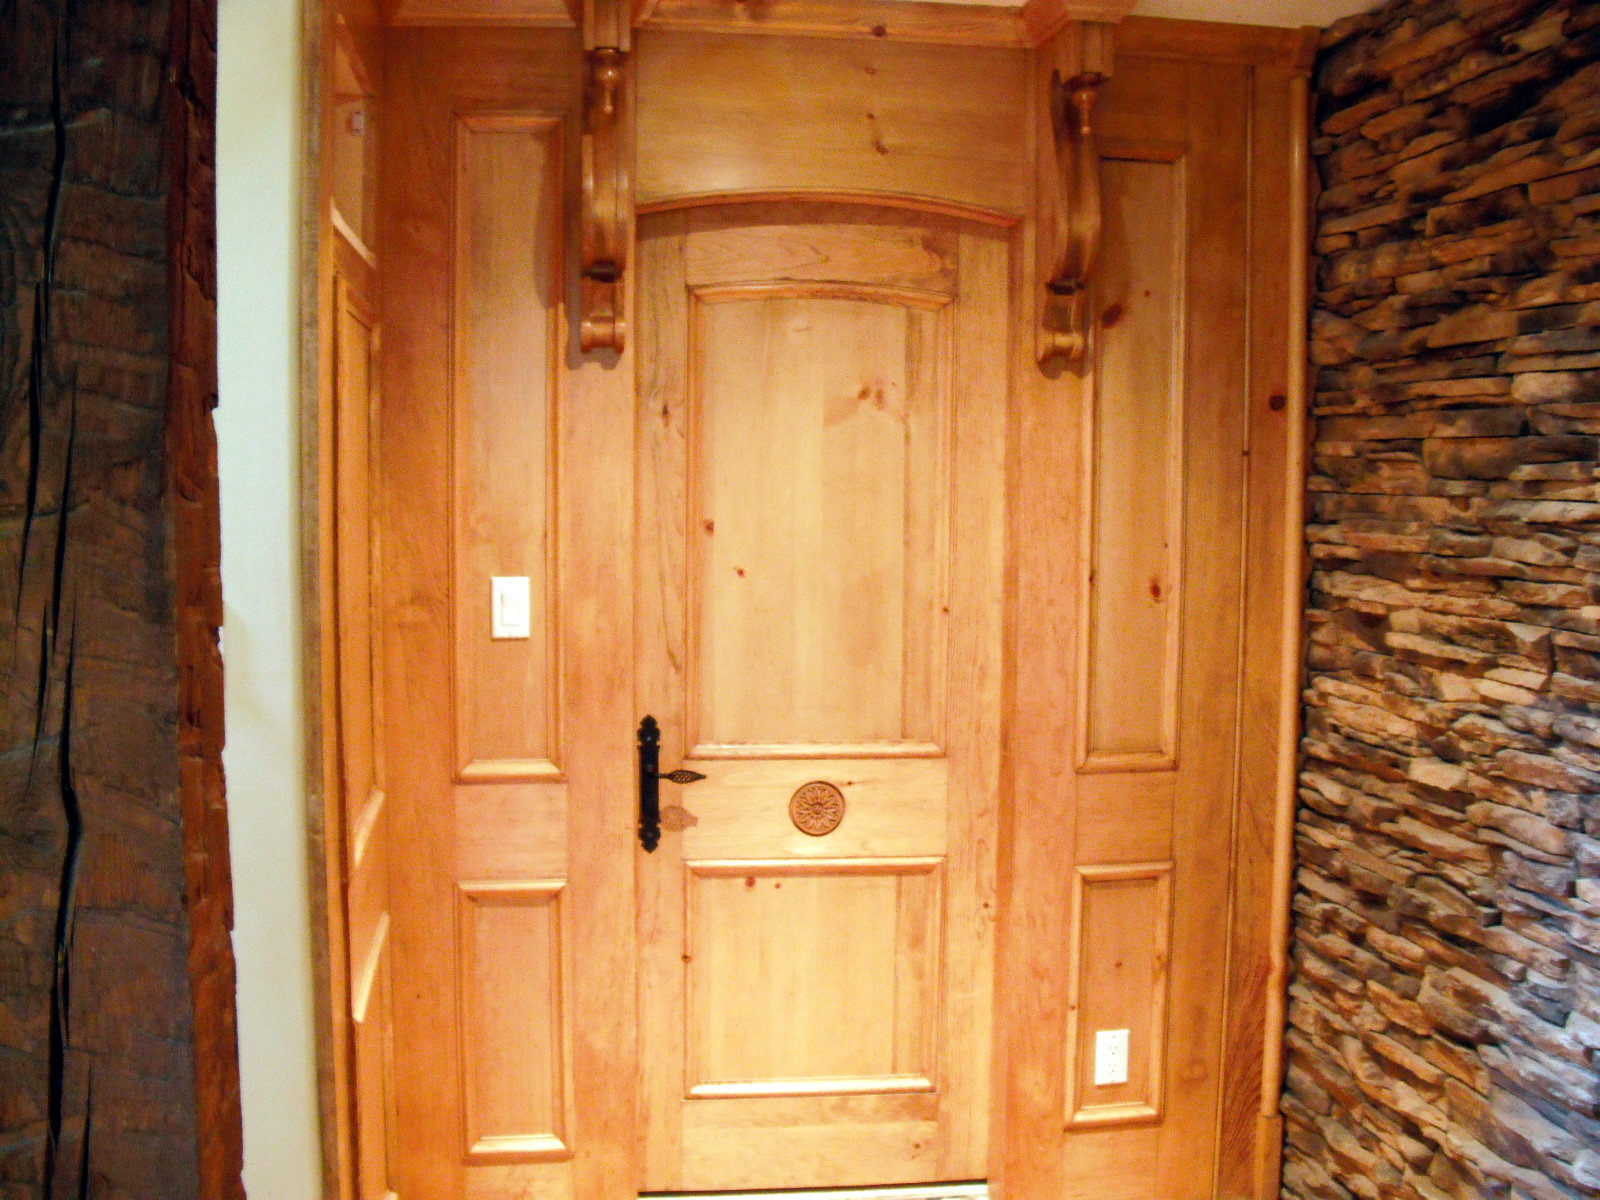 Wonderful image of Custom Designed and crafted interior wood paneling door brackets with #B67215 color and 1600x1200 pixels